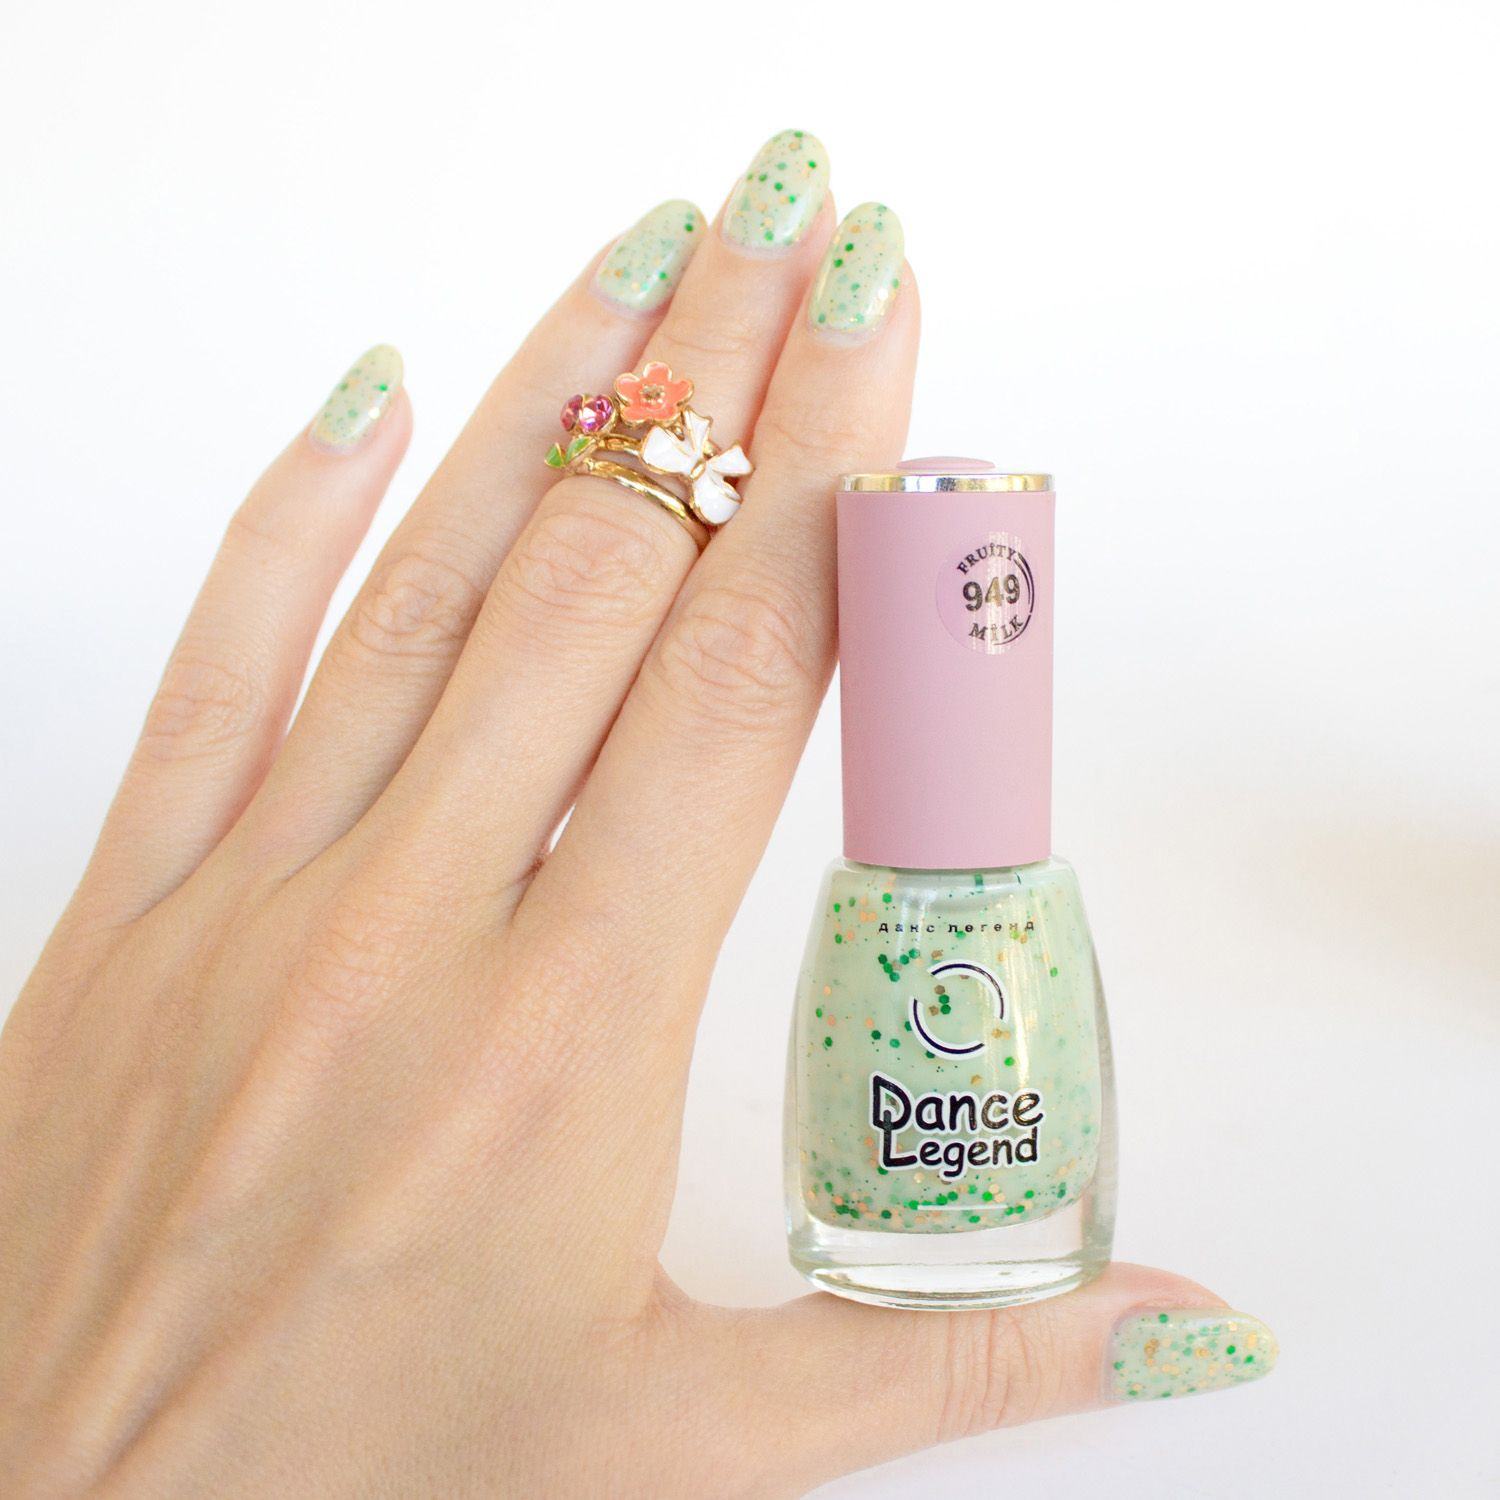 Cute stacked rings & Dance Legend Kiwi Smoothie nail polish. #cute ...